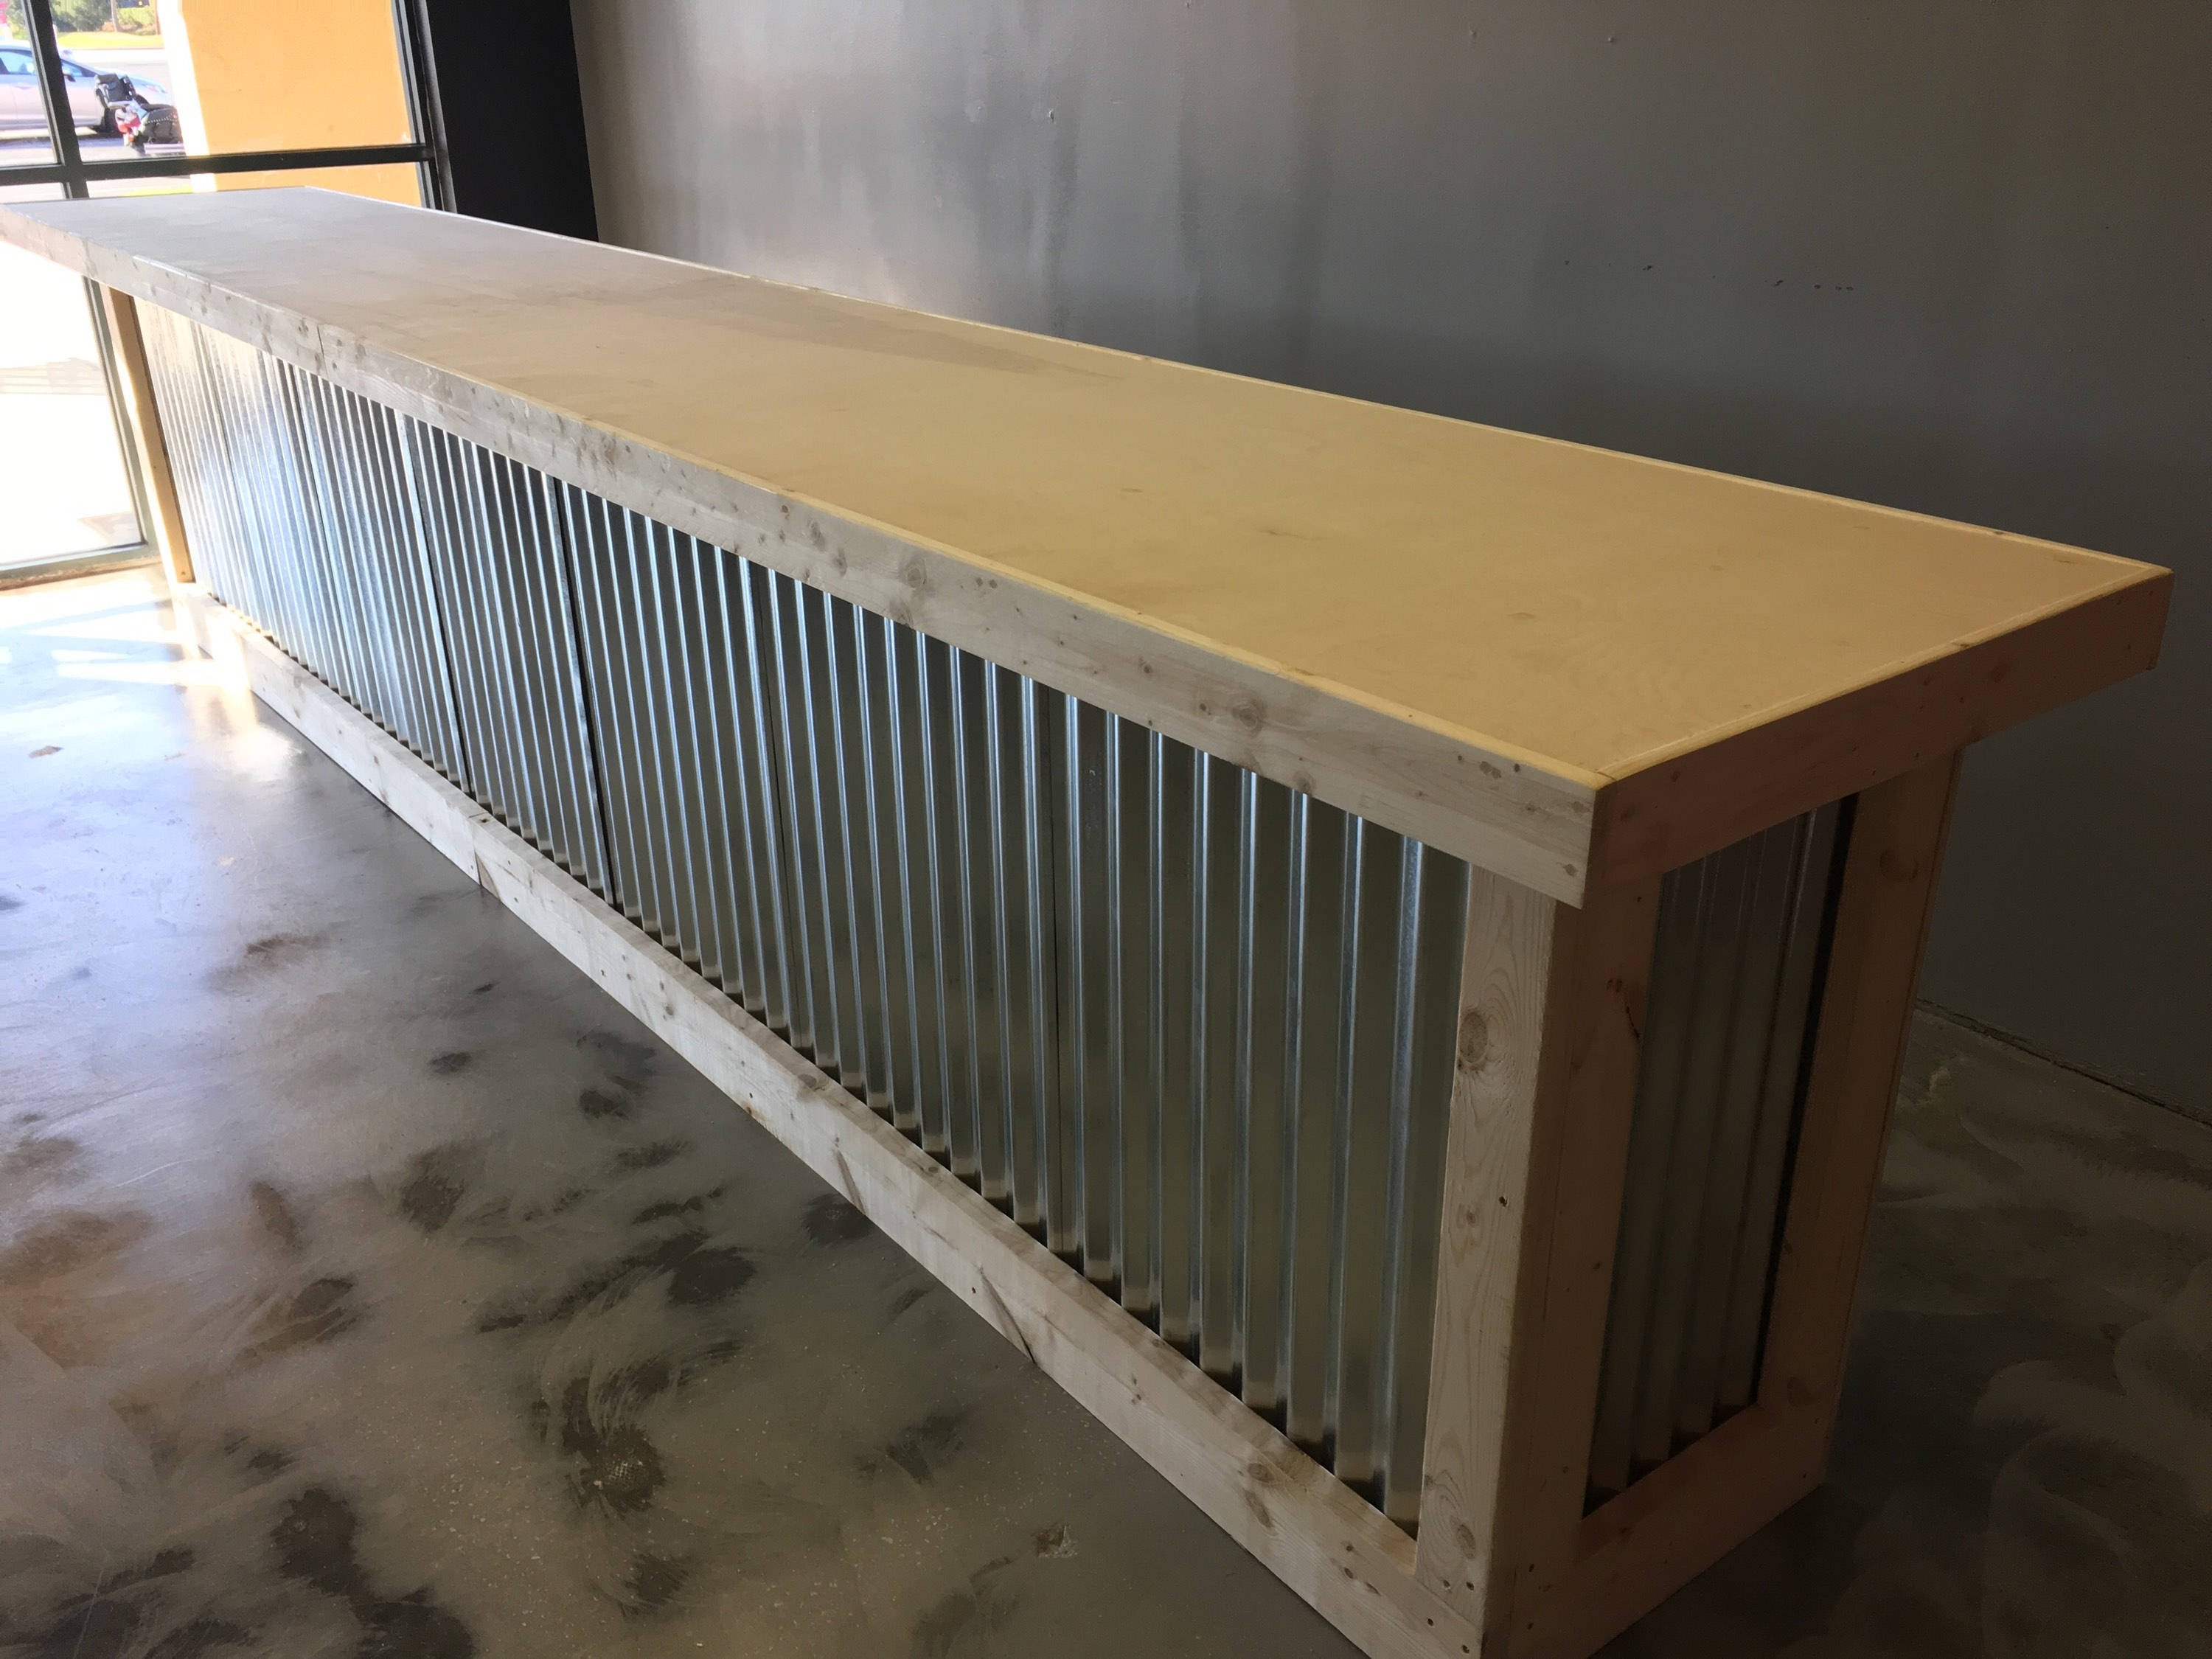 Inspiration about The Vapor – 16' Corrugated Metal Rustic Or Industrial Sales Counter Intended For 2017 Corrugated Metal Sideboards (#14 of 20)